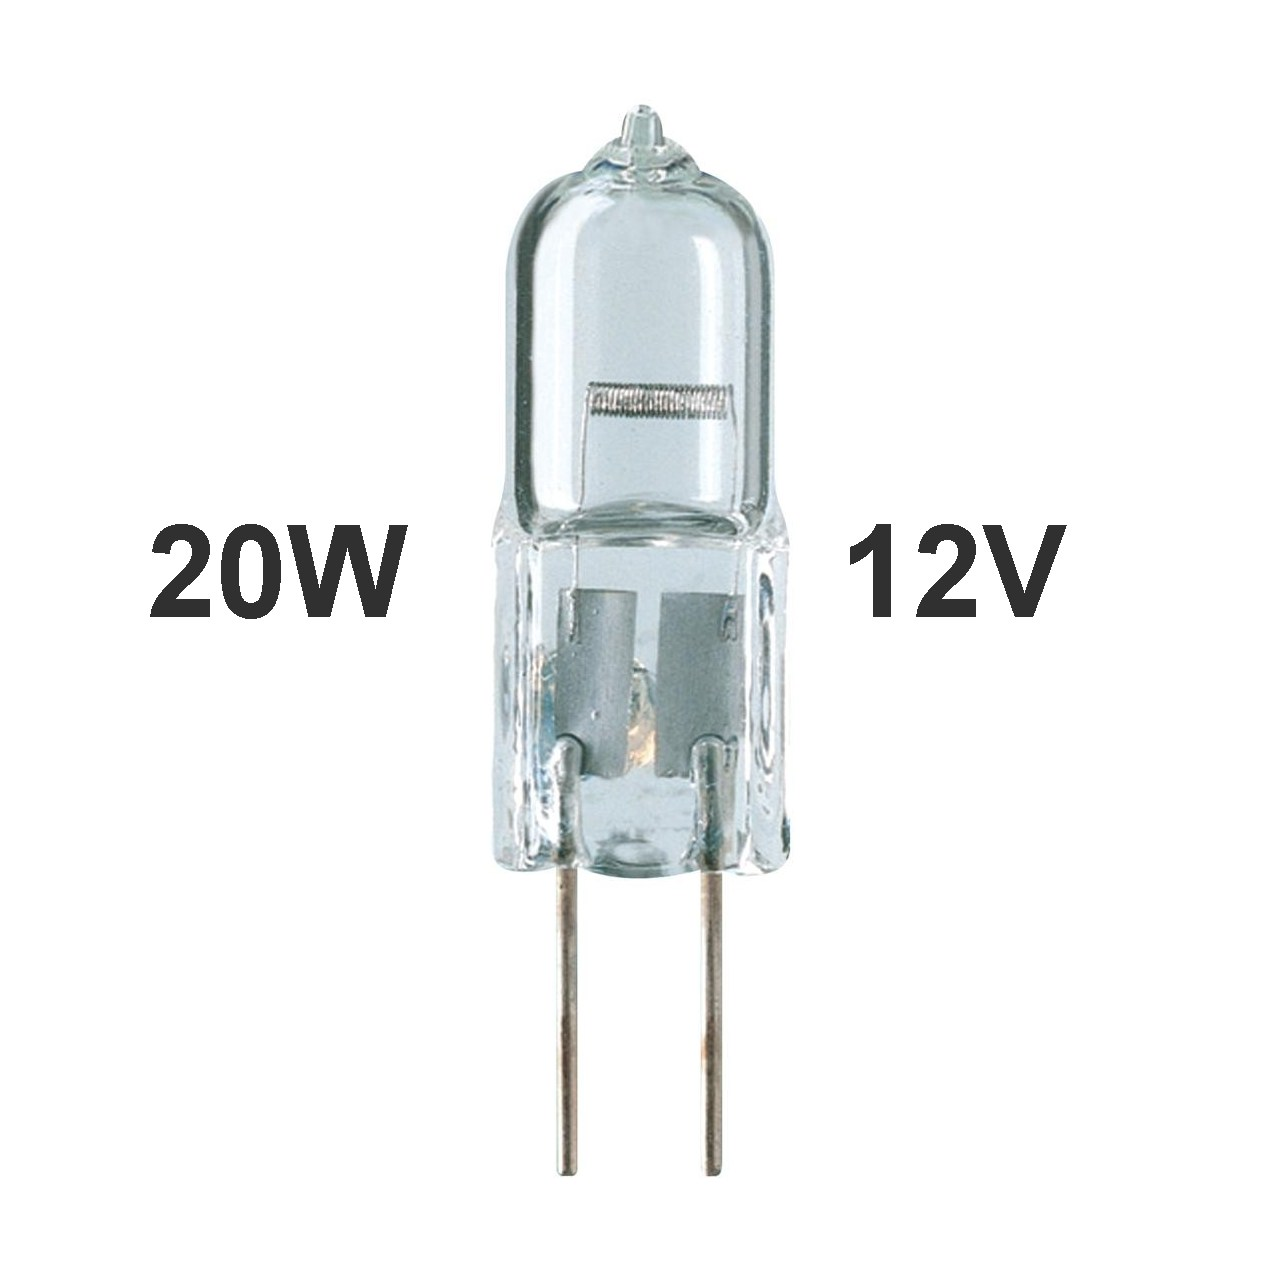 Brizzo lighting stores 20w halogen g4 bi pin bulb 12v low for Where to buy halogen bulbs